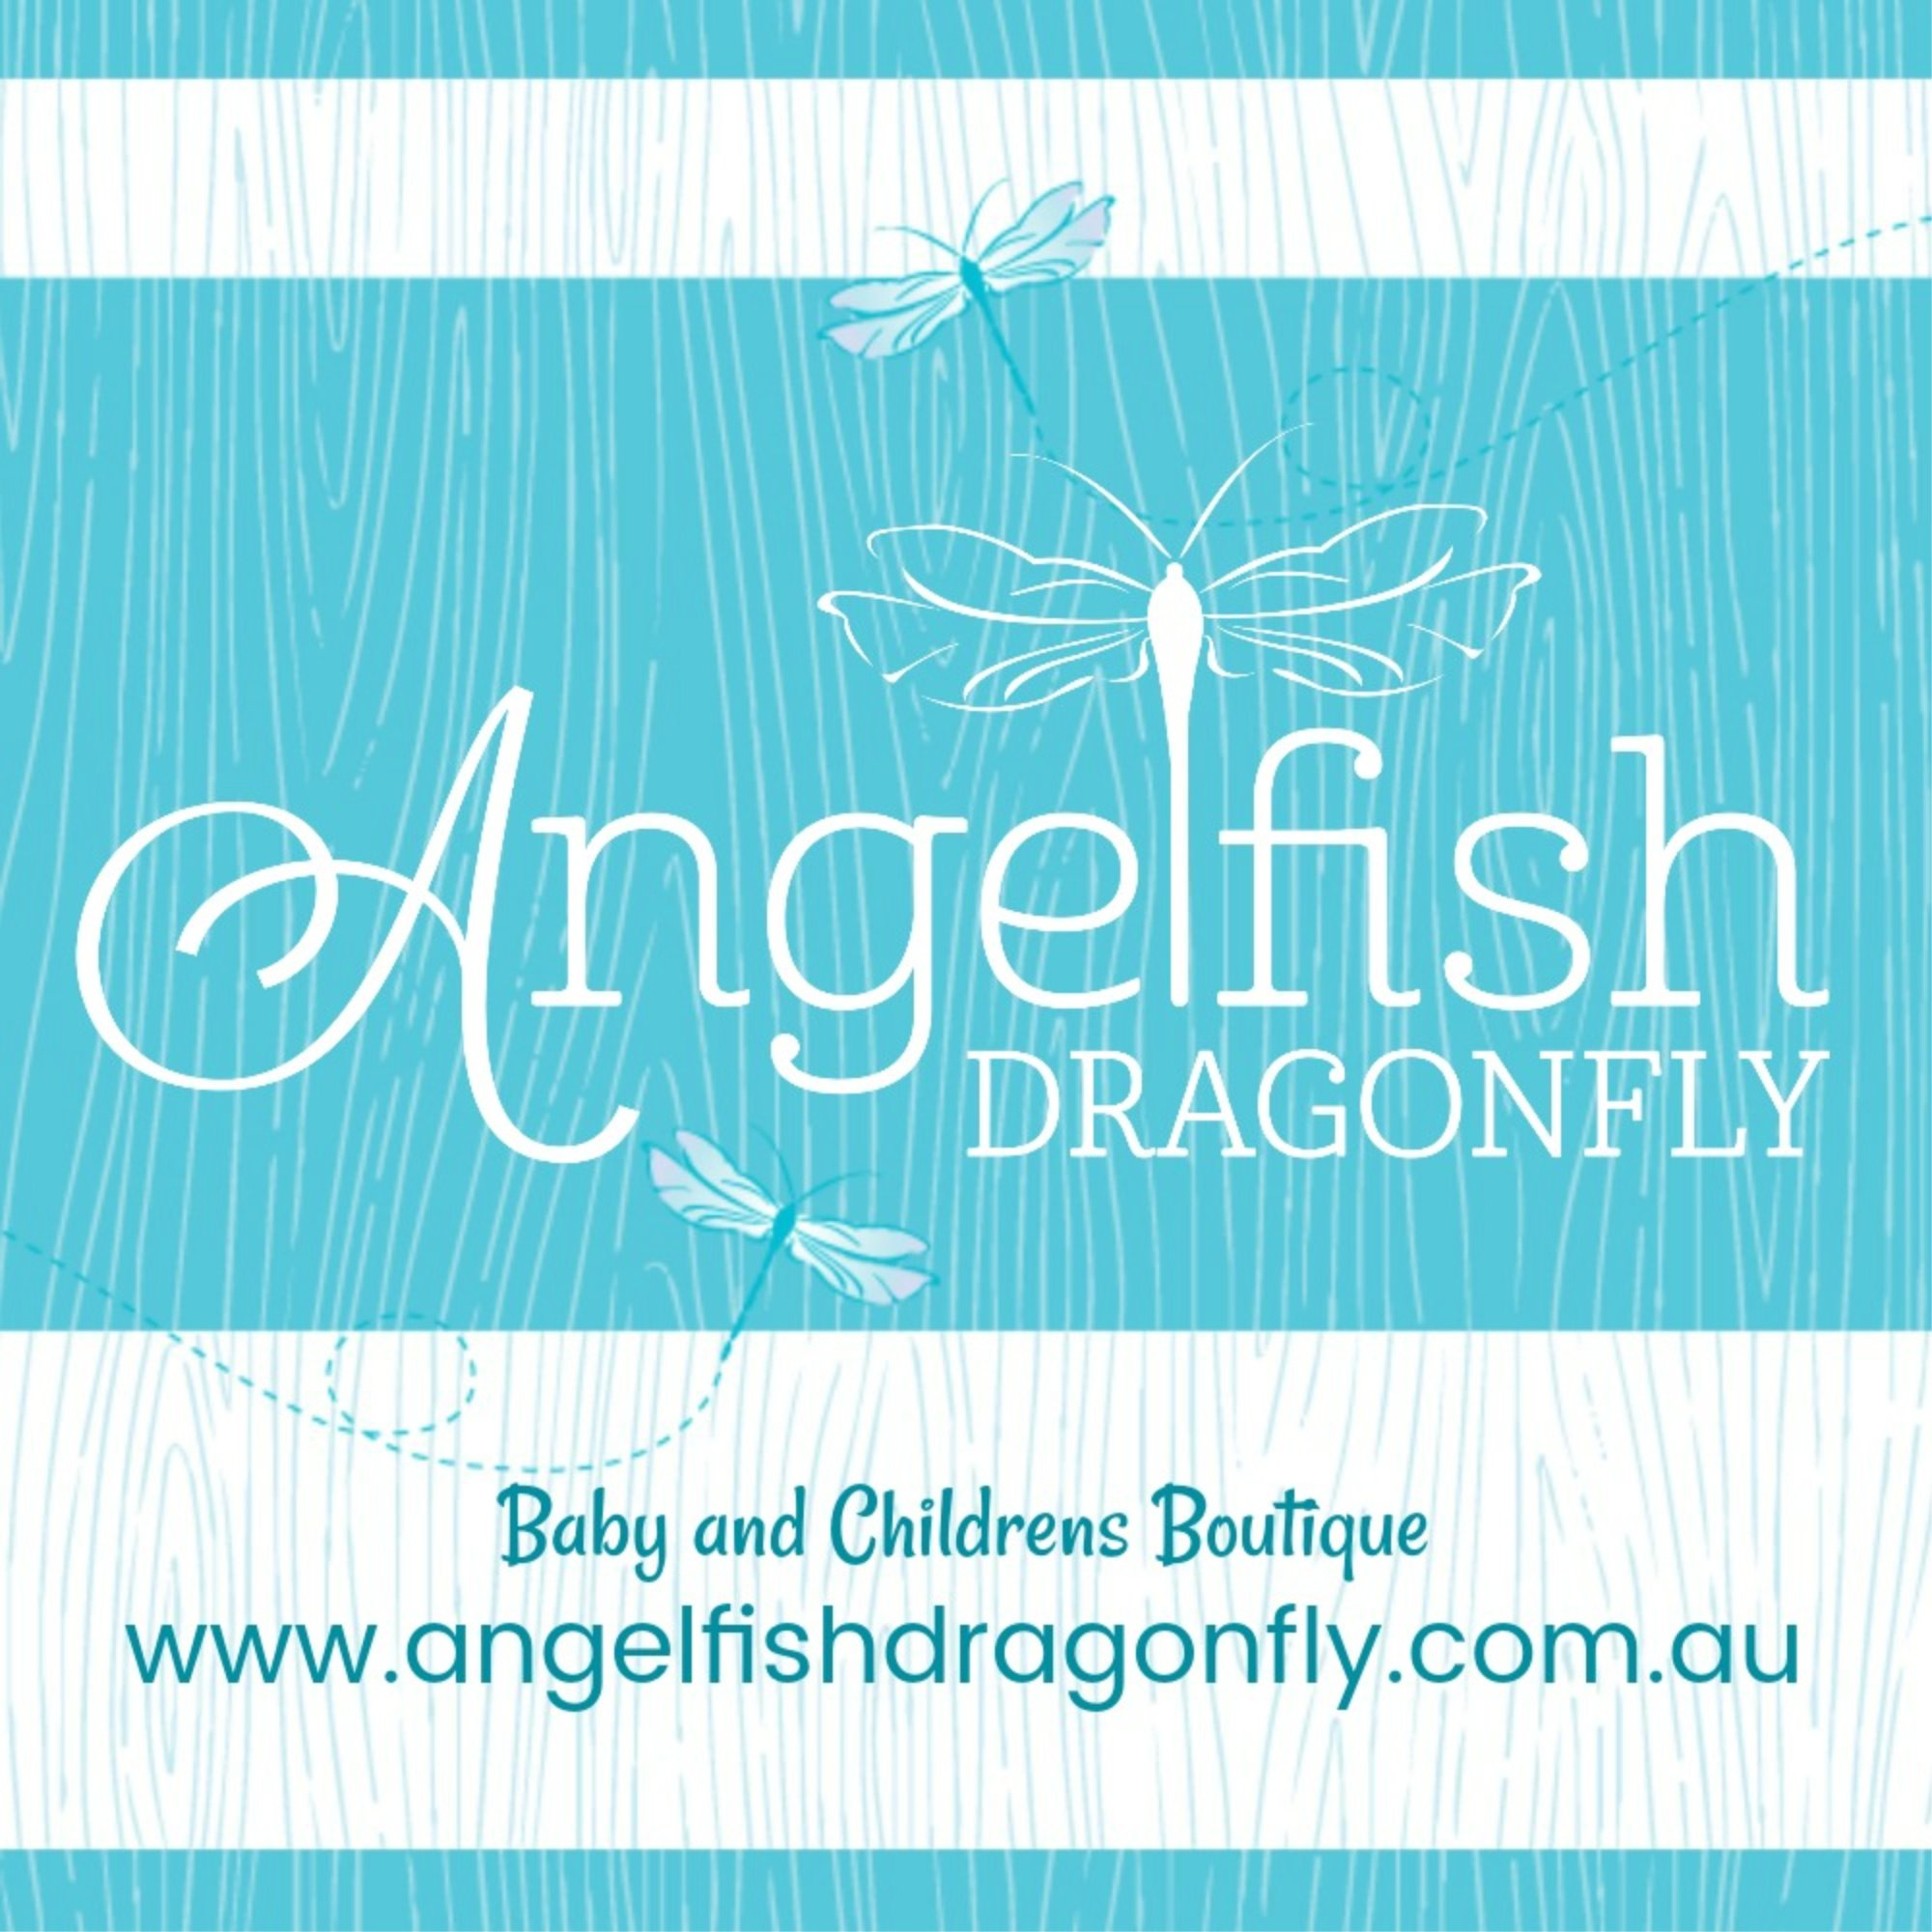 Angelfish Dragonfly – Baby and Children's Boutique